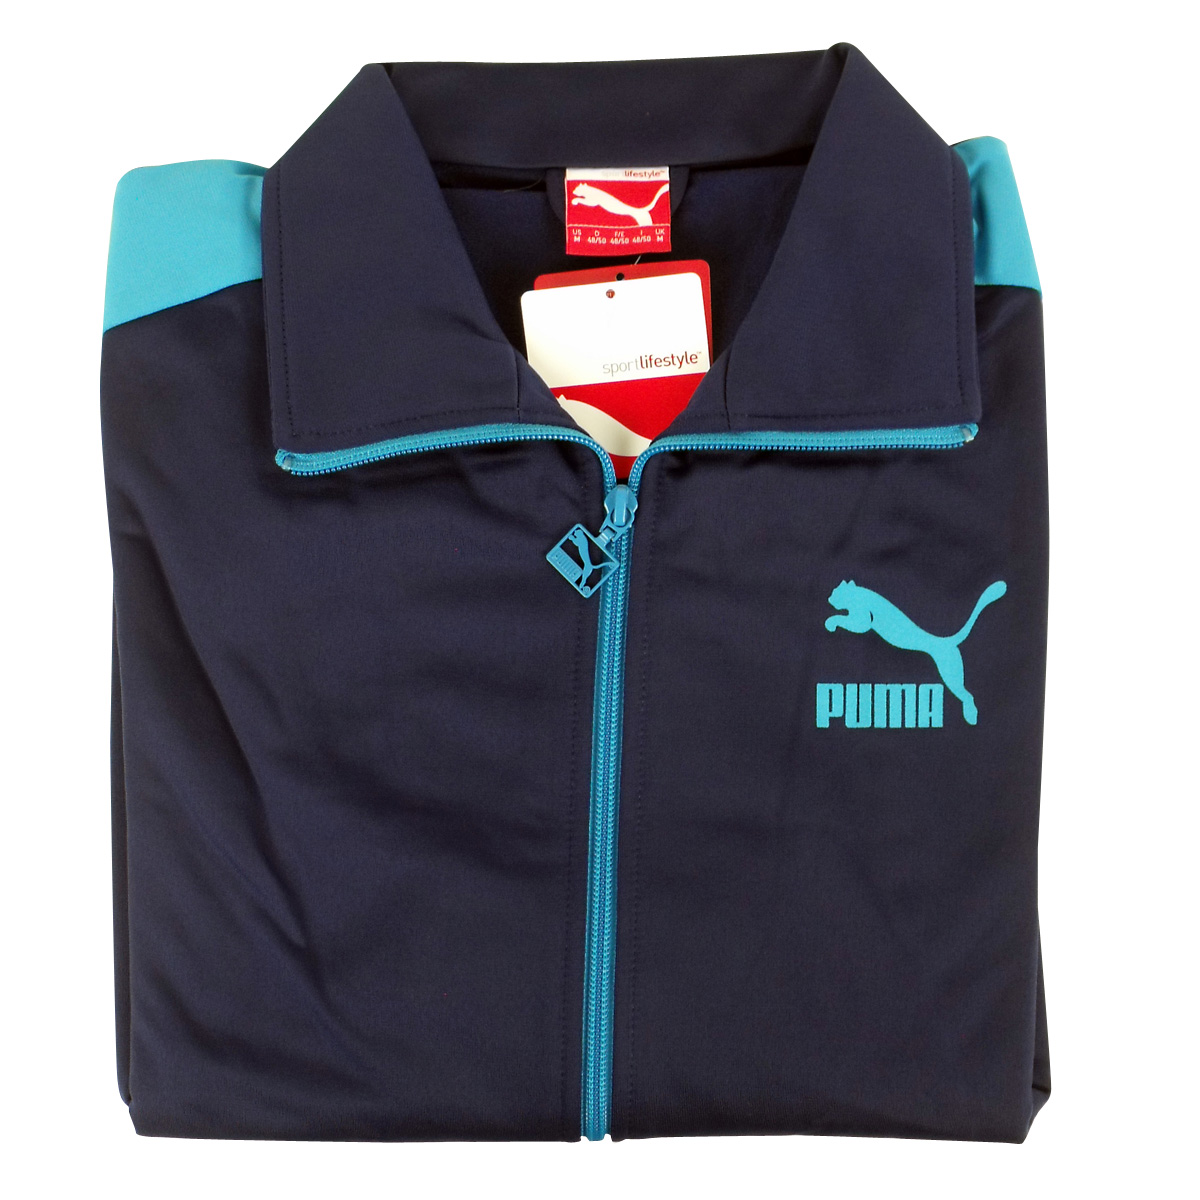 puma tracksuit mens grey